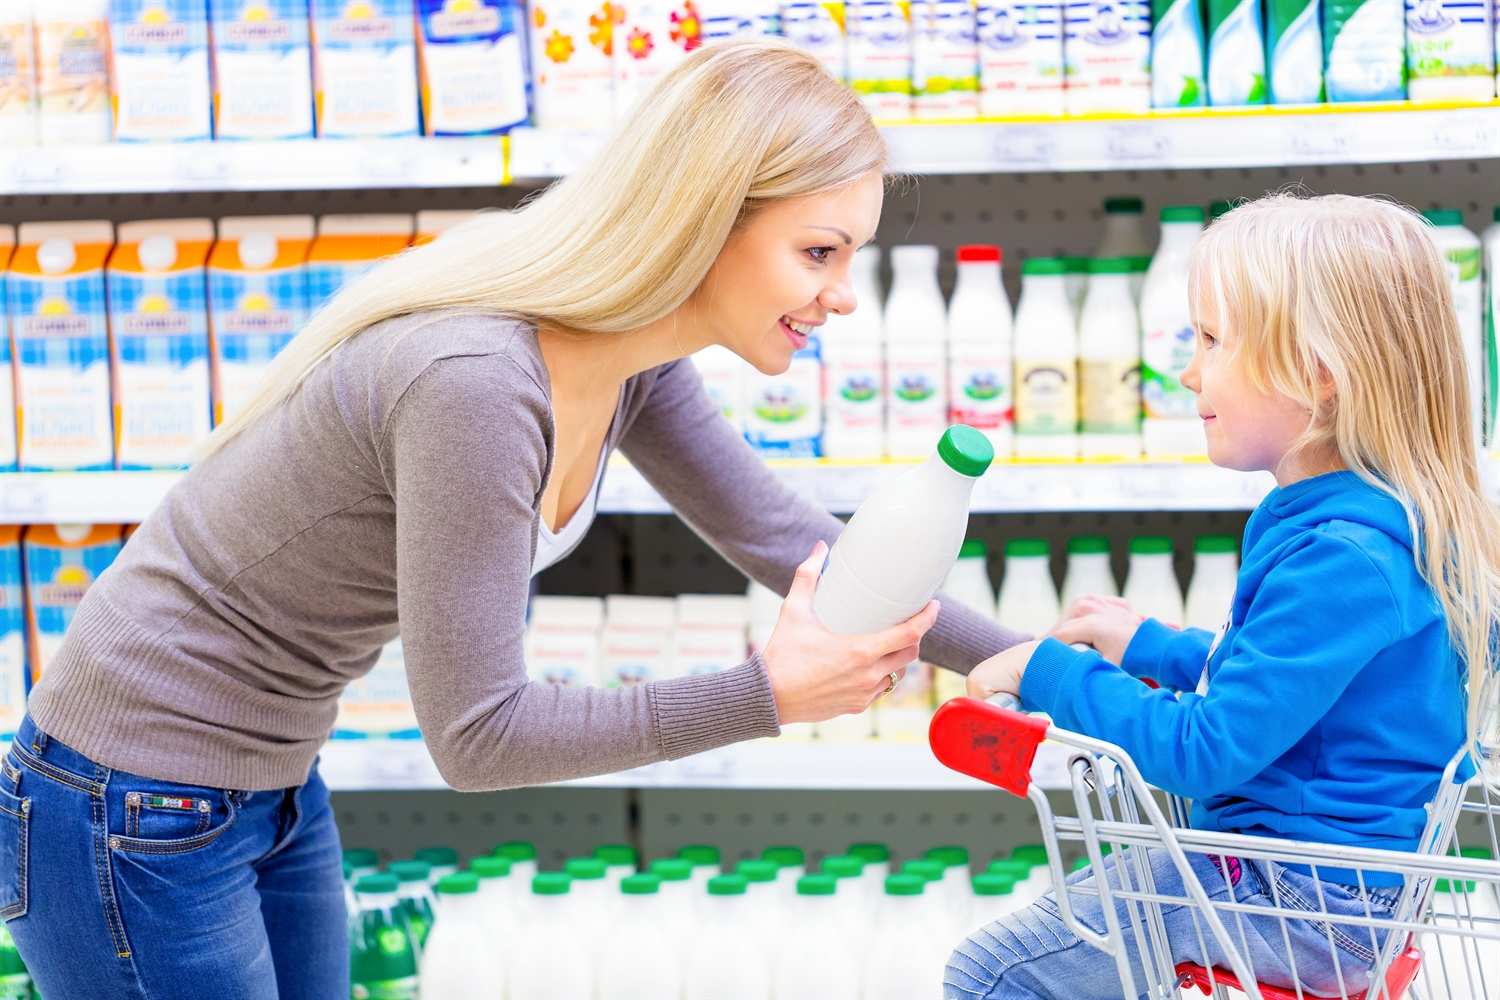 The 7 Most Common Food Allergies